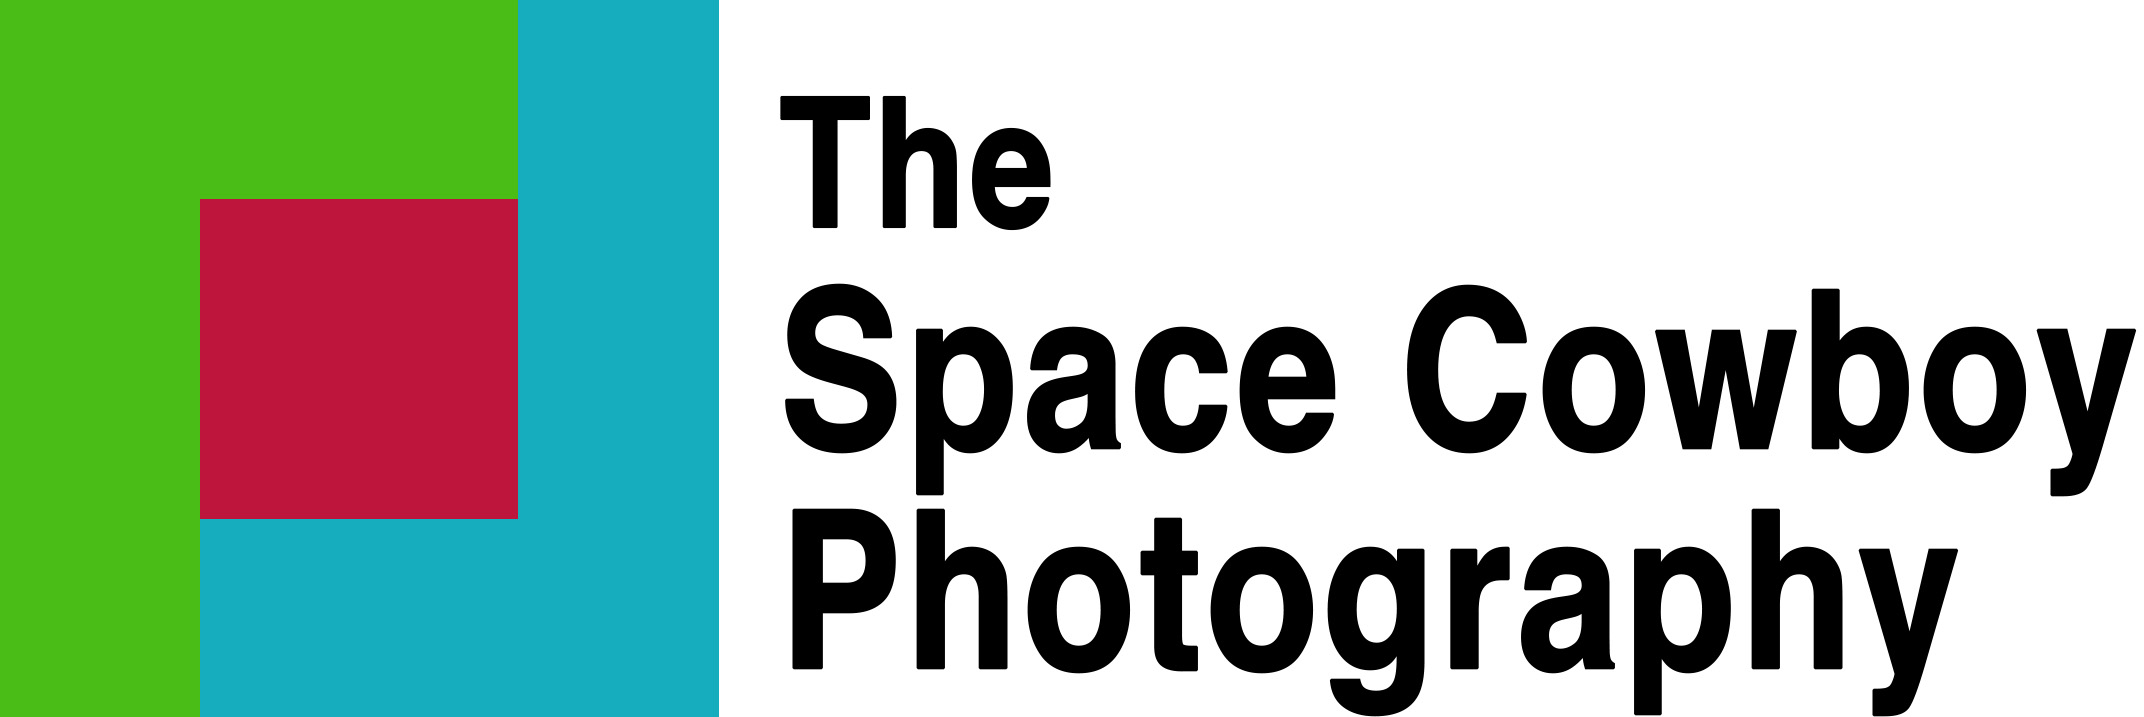 Logo - The Space Cowboy Photography